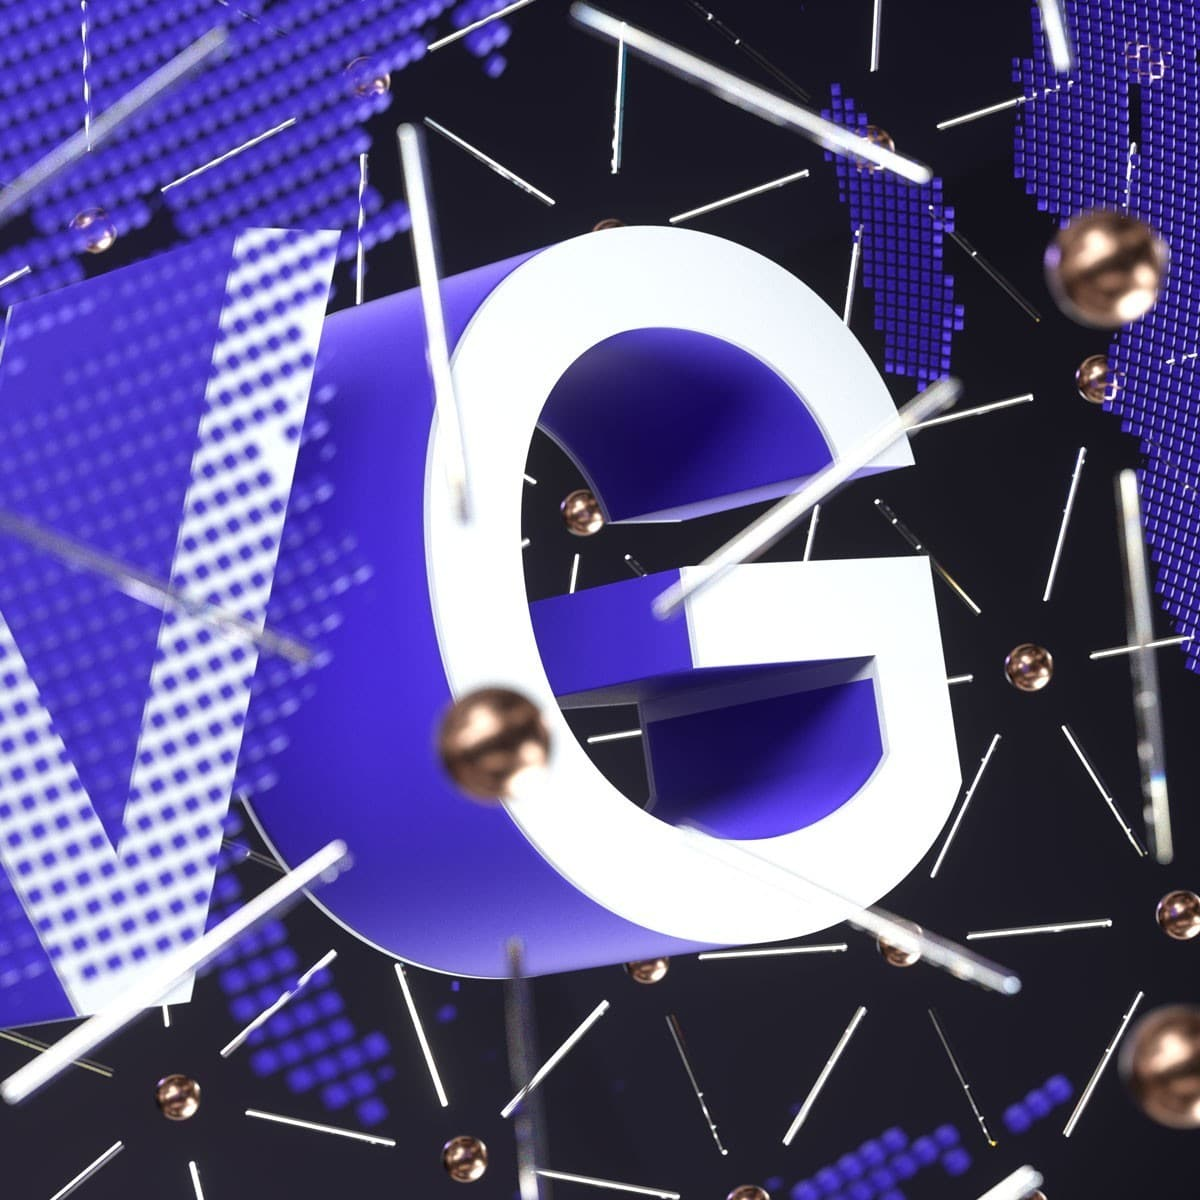 FIVG super stock Ericsson is leading the global 5G charge